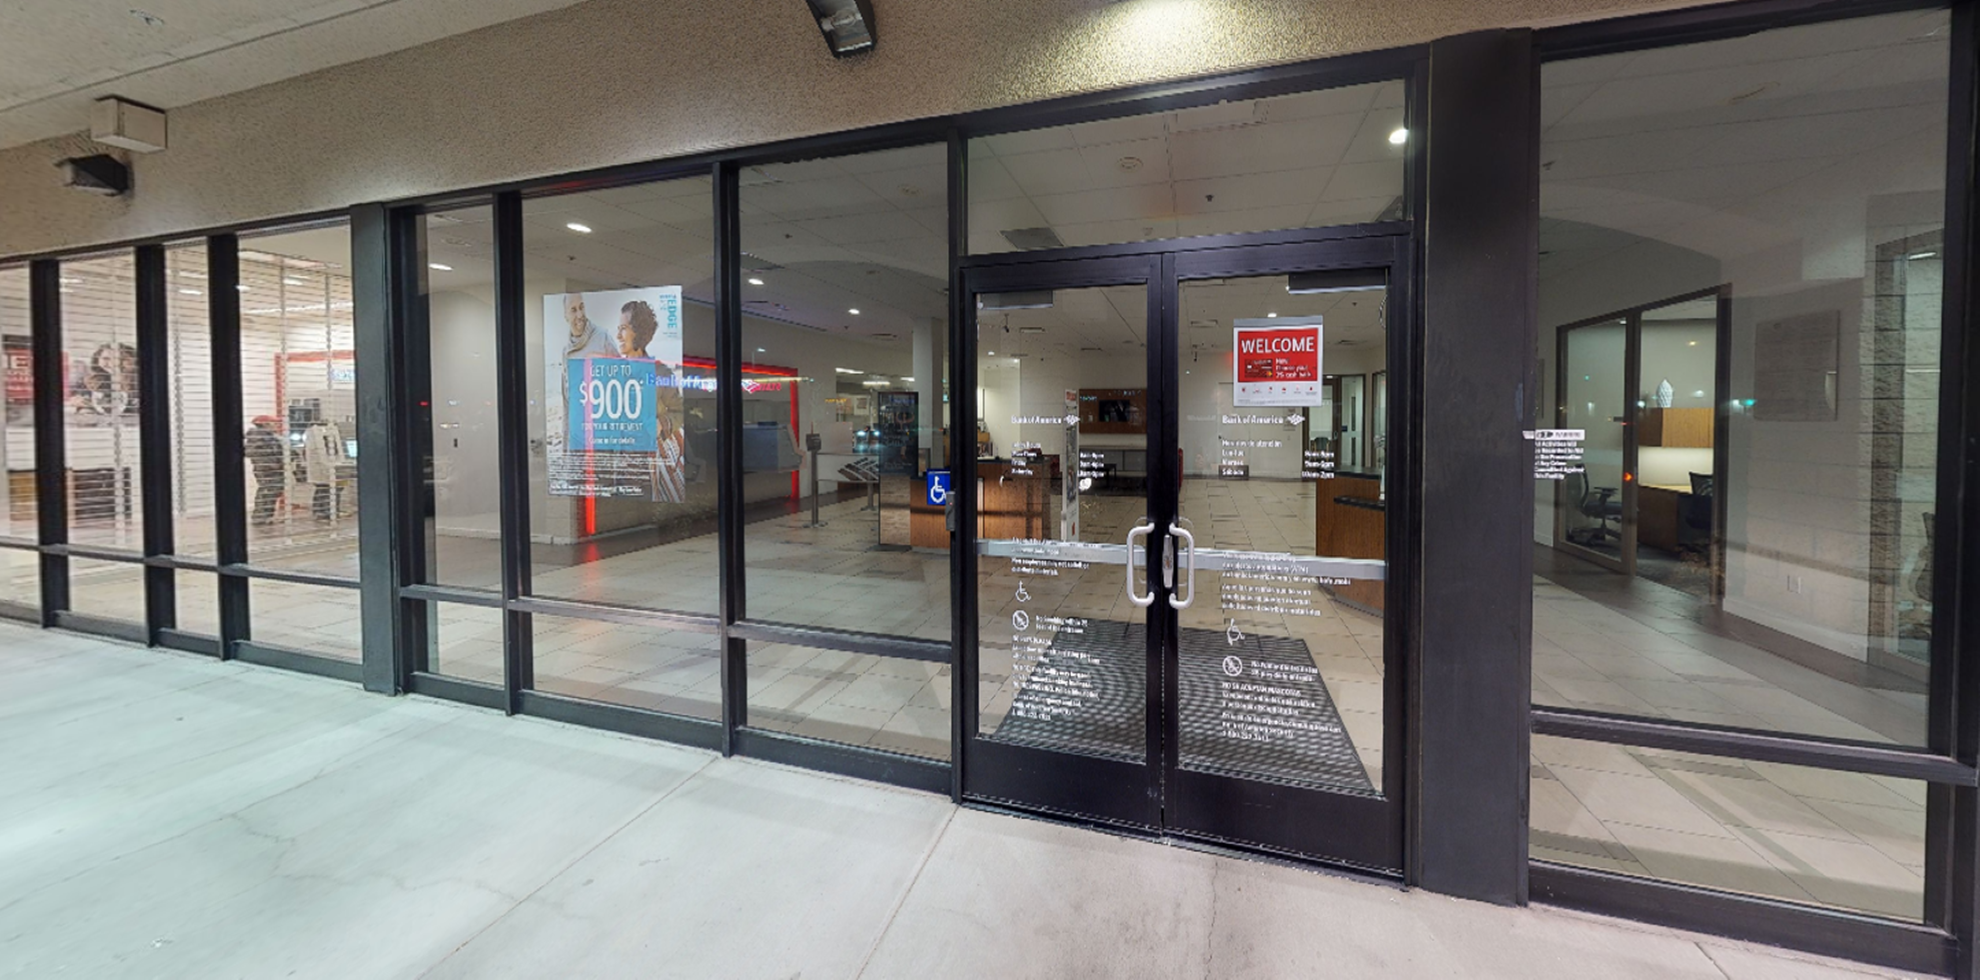 Bank of America financial center with walk-up ATM   69135 Ramon Rd STE A, Cathedral City, CA 92234